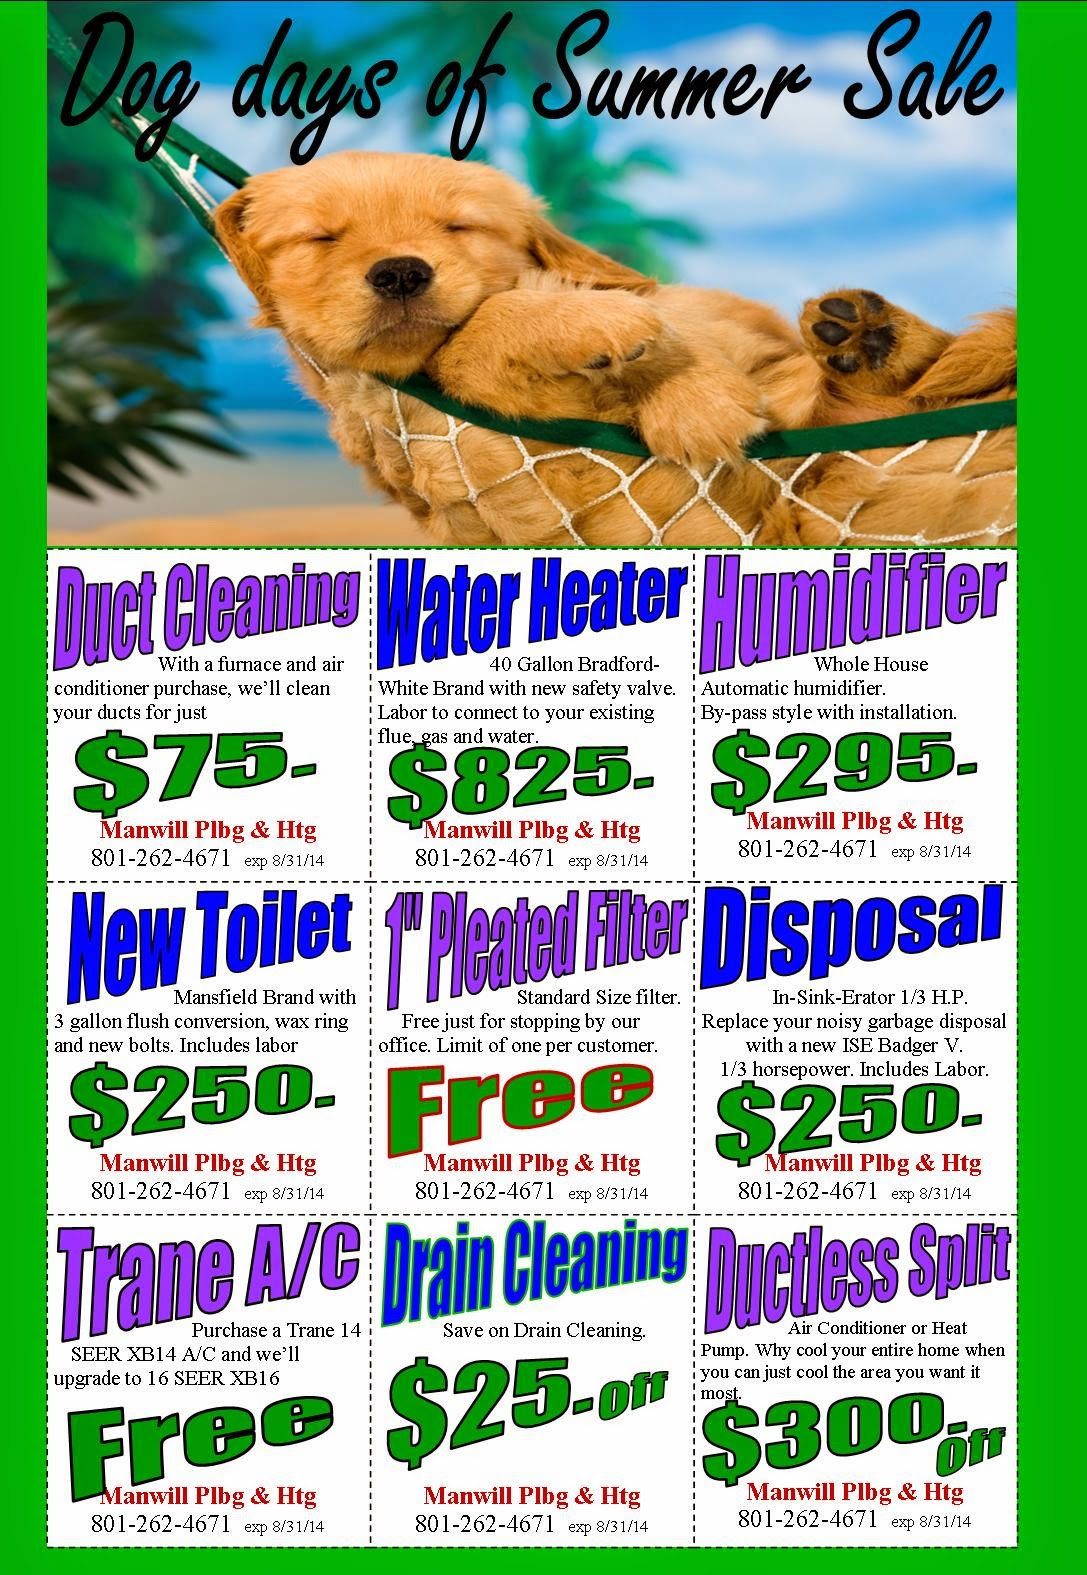 Dog Days of Summer Coupons | Manwill Plumbing